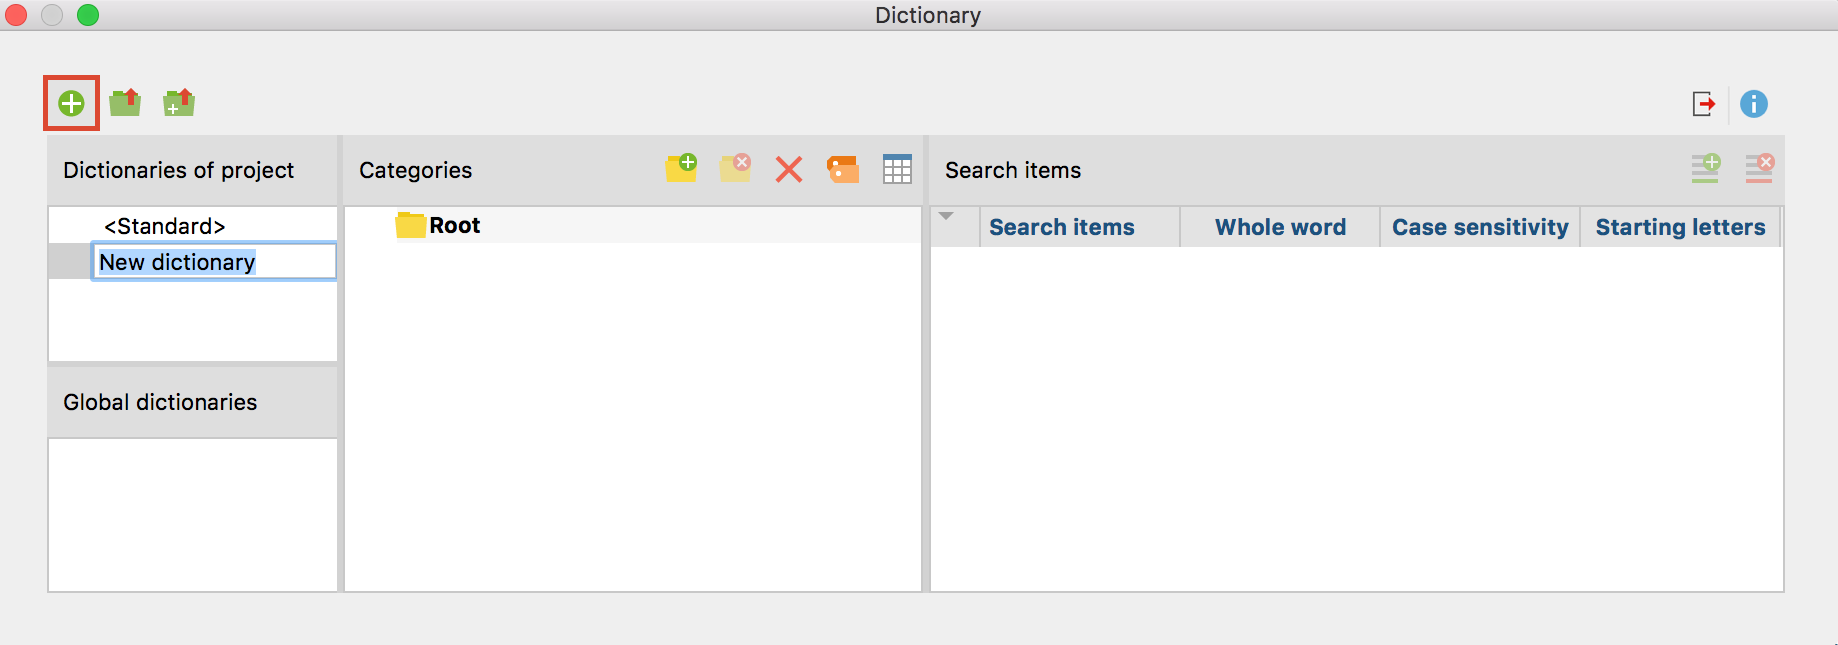 Icon for adding a new dictionary to the project